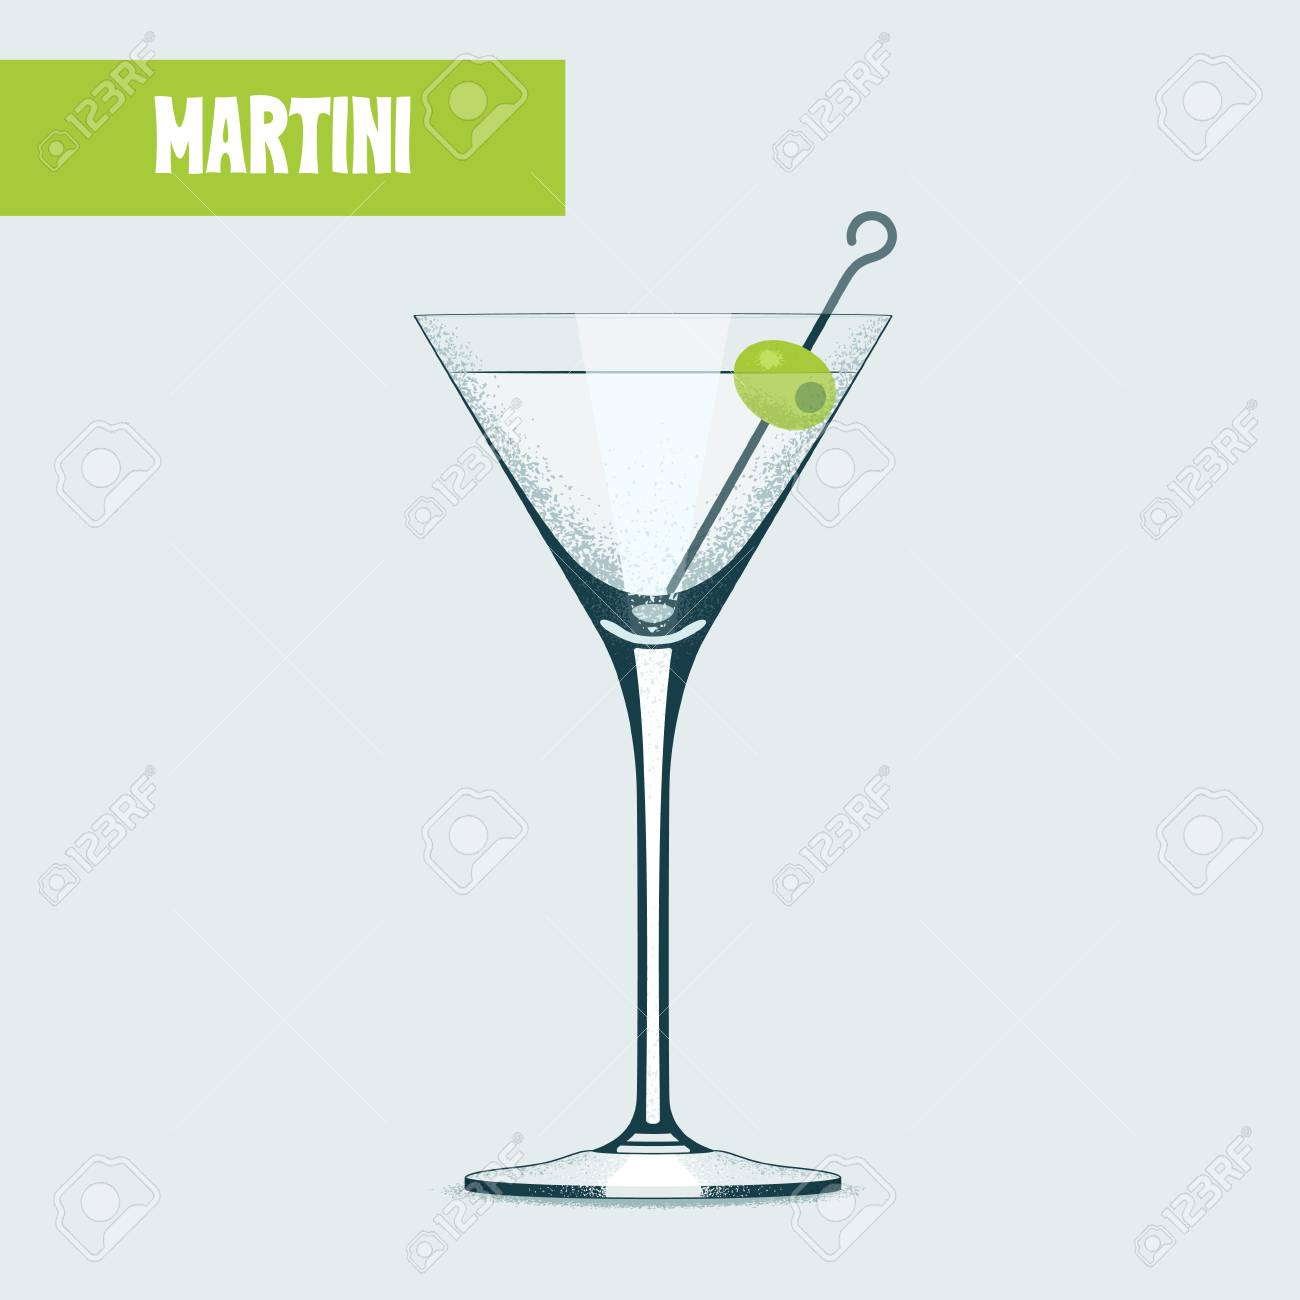 Martini Cocktail Glass With Olive Vector Illustration Design